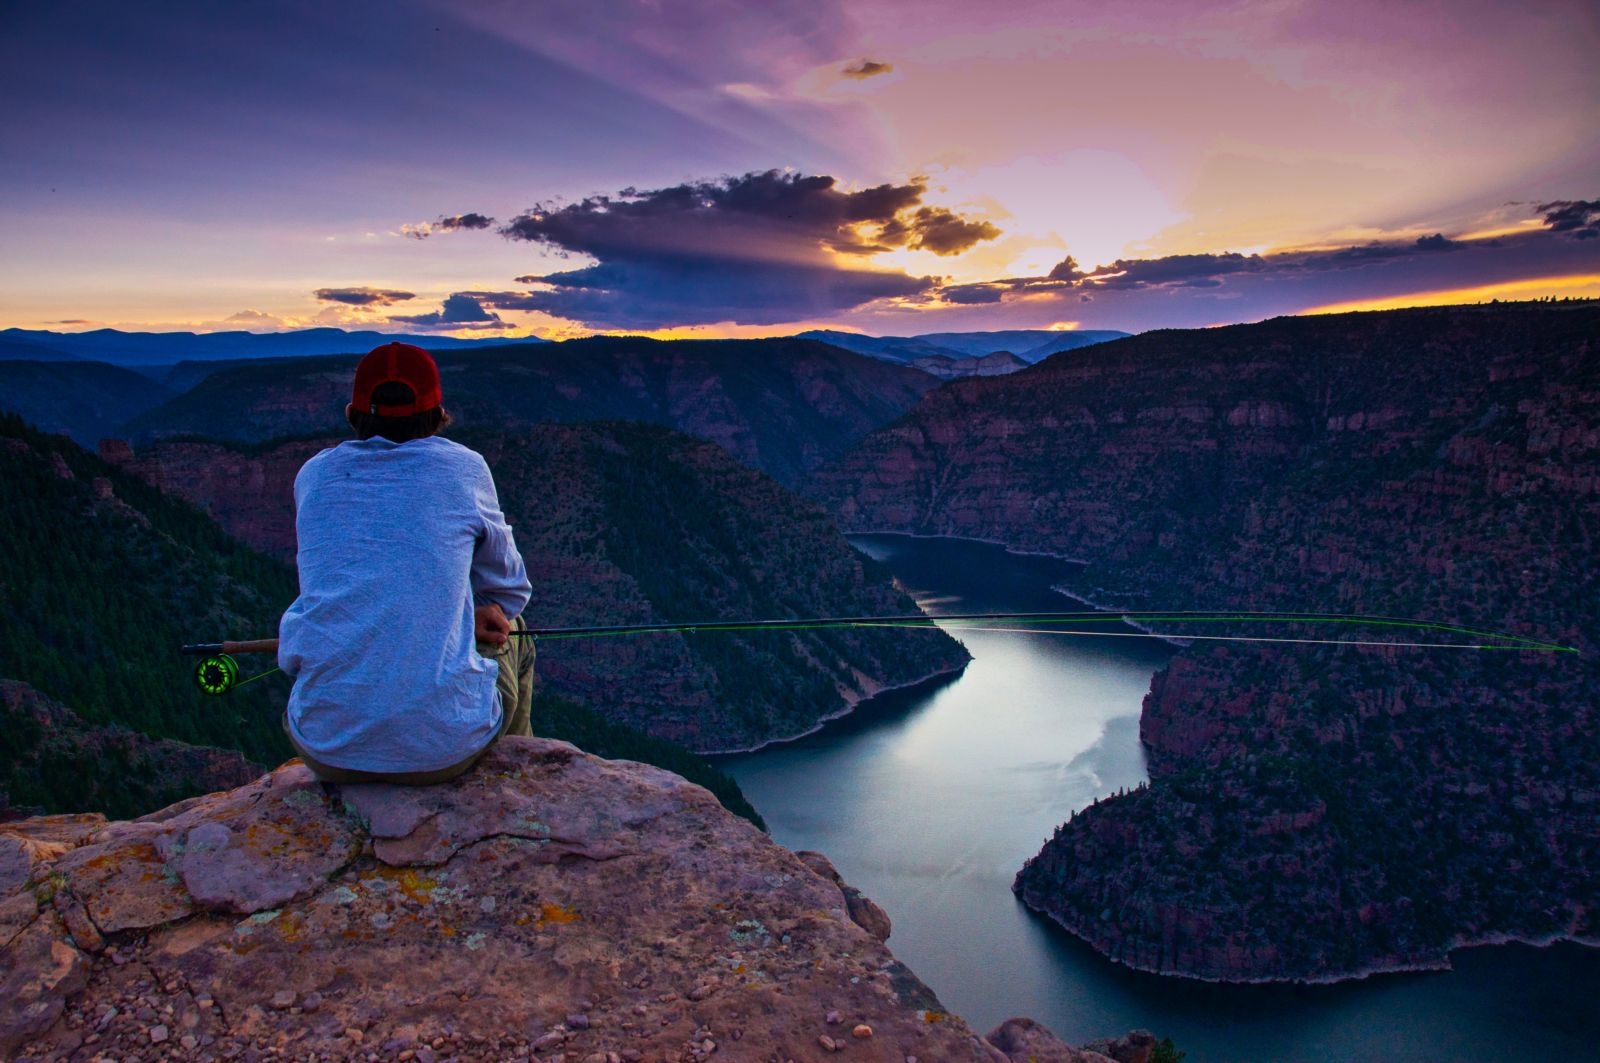 You don't have to be an experienced angler to catch a trophy fish at Flaming Gorge.